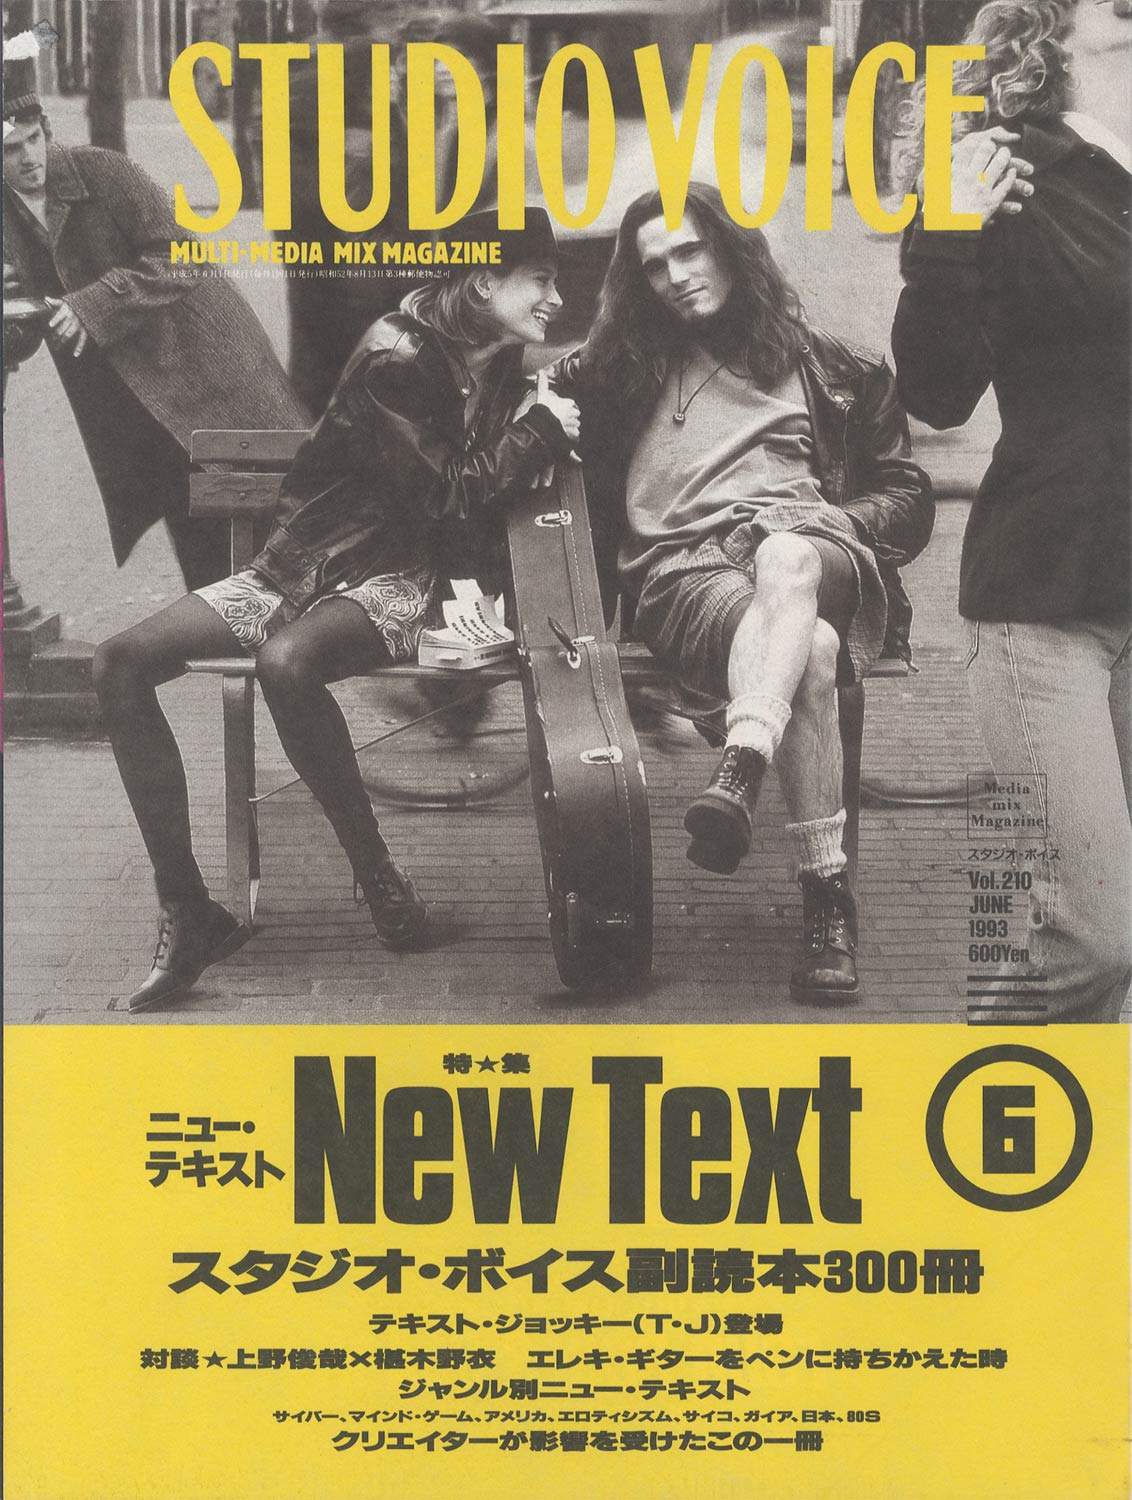 STUDIO VOICE MULTI-MEDIA MIX MAGAZINE/スタジオ・ボイス 1993年6月号 Vol.210